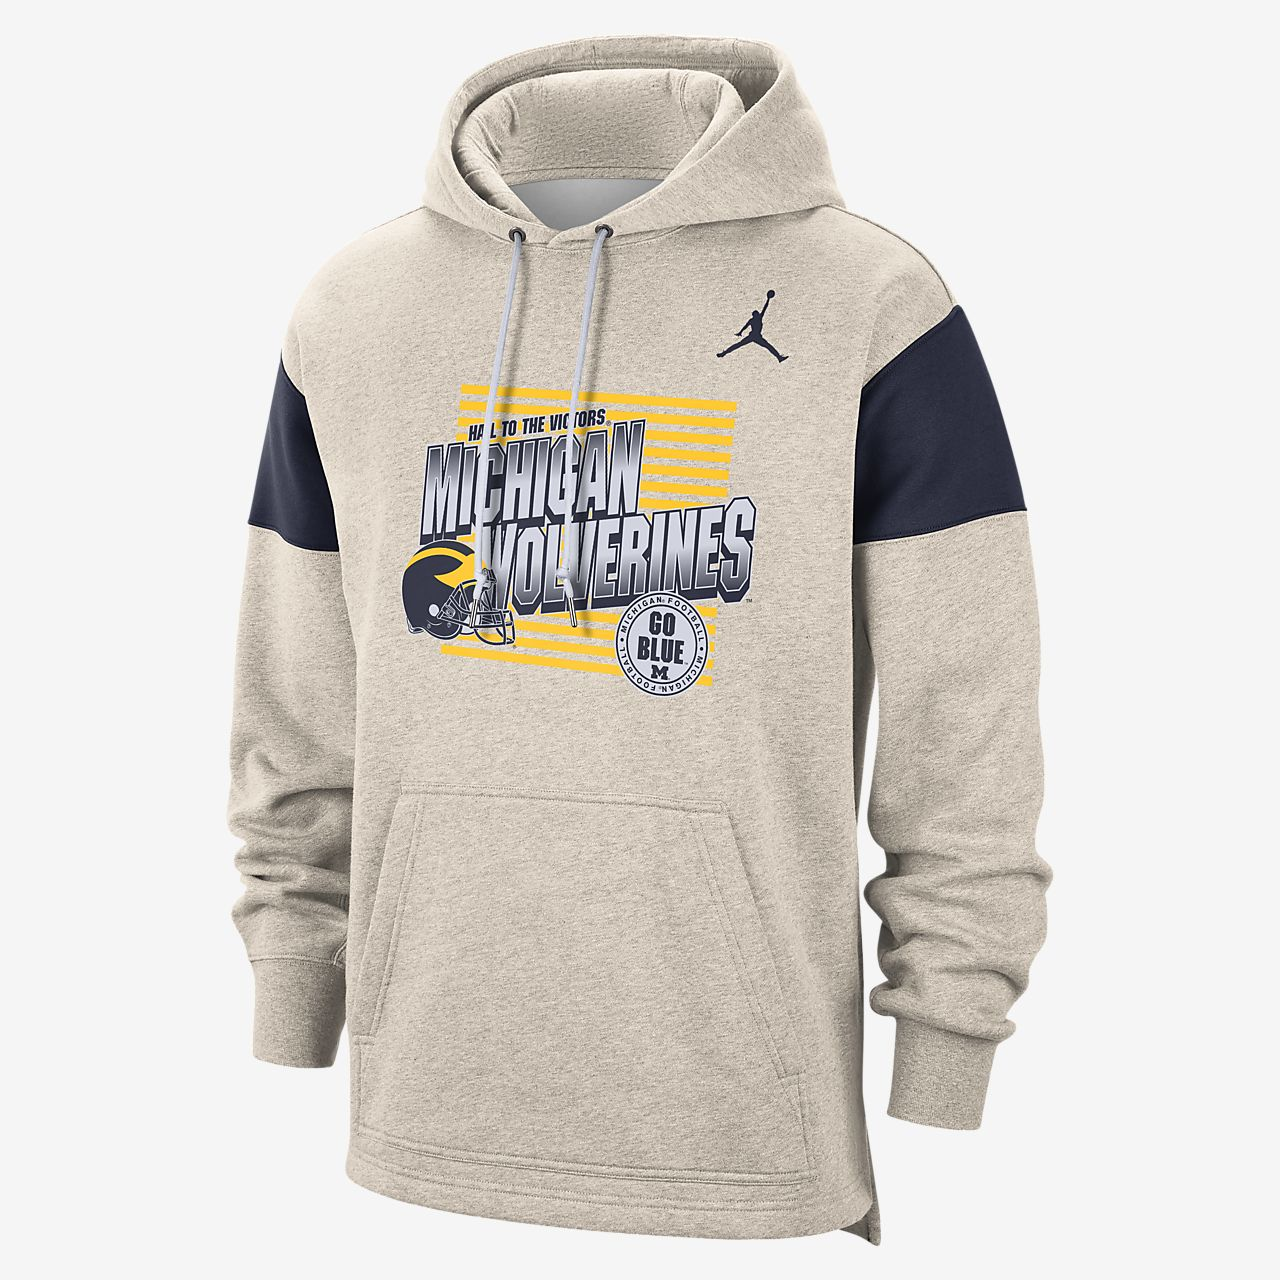 Jordan College (Michigan) Men's Pullover Hoodie